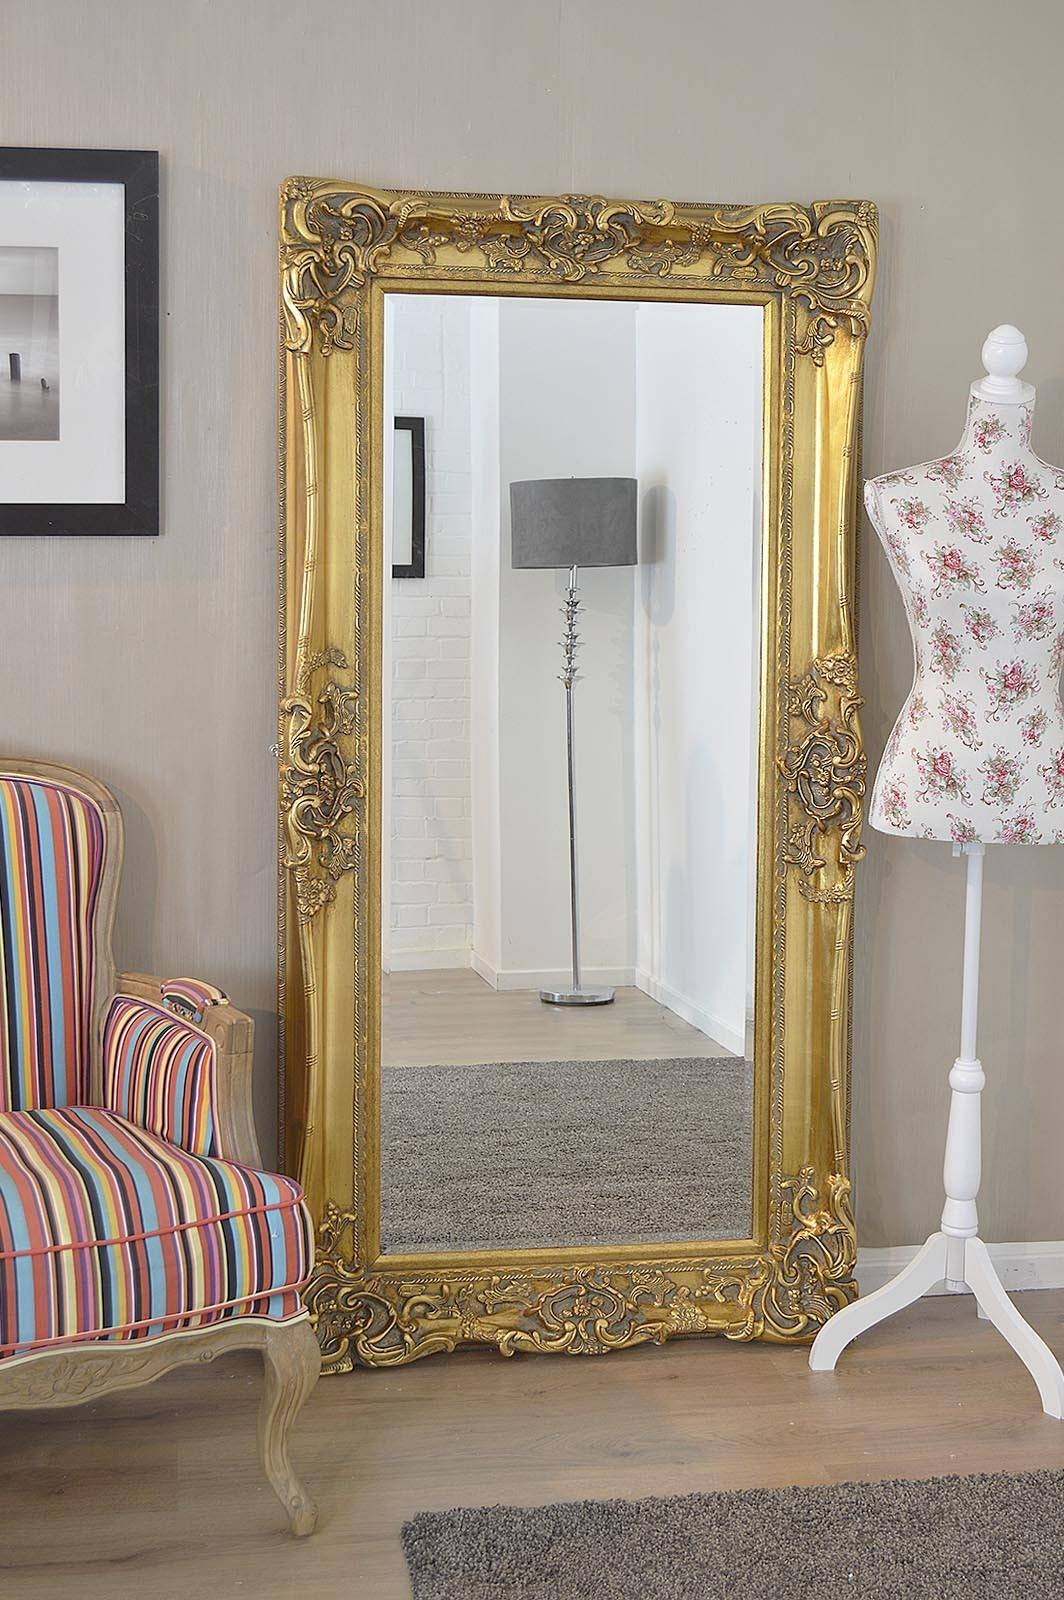 Antique Wall Mirrors Antique Wall Mirrors Large Antique Wall throughout Large Ornate Gold Mirrors (Image 2 of 15)